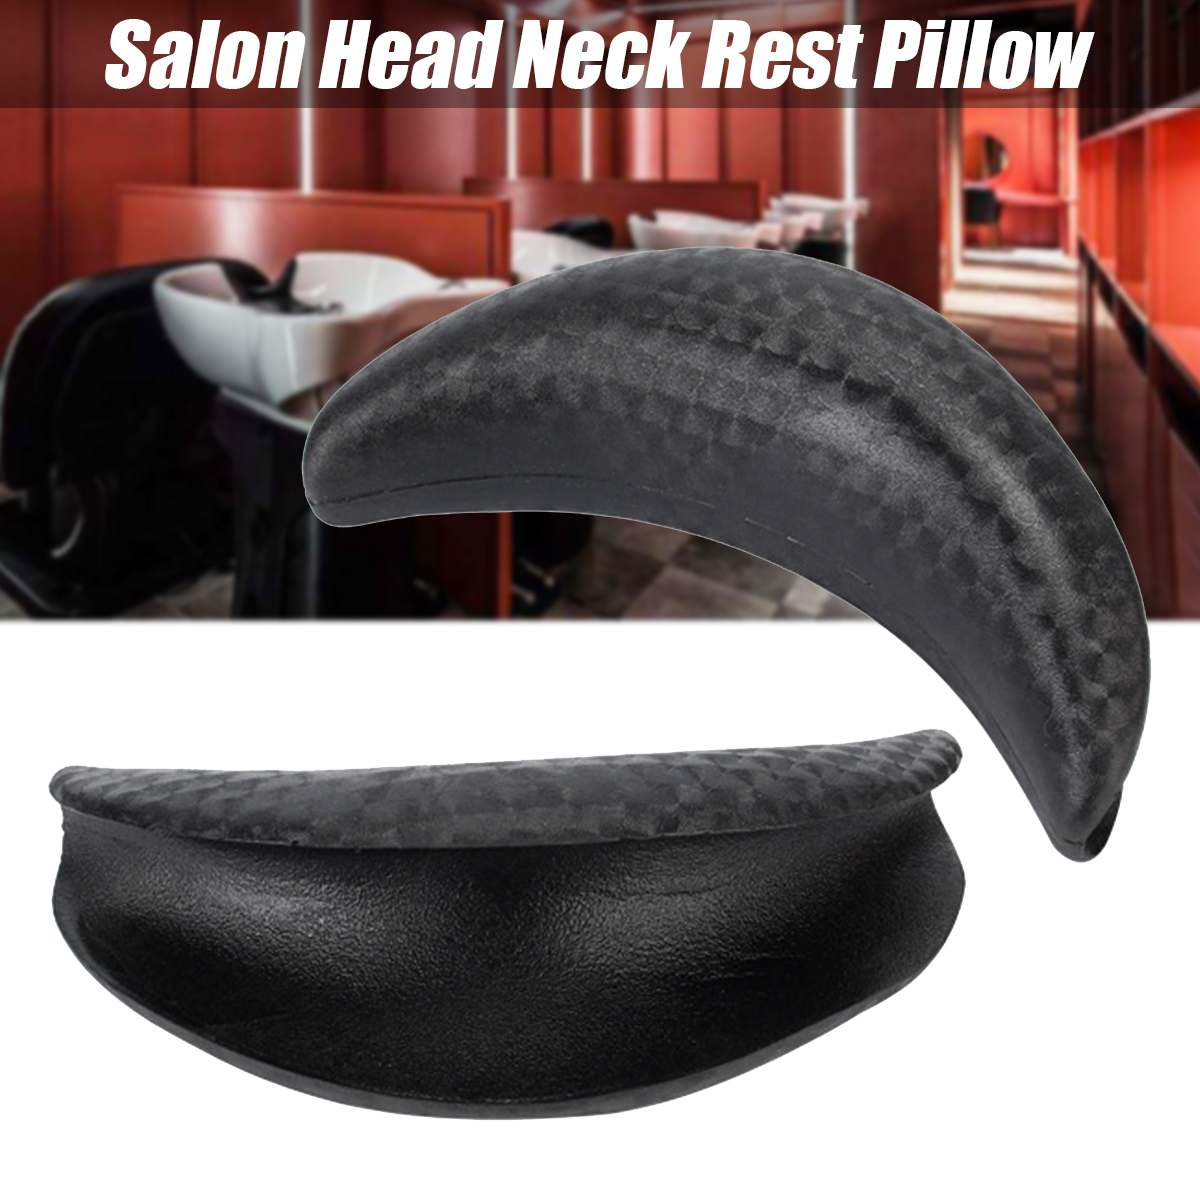 18*9cm Hair Wash Gel Neck Rest Pillow Cushion Salon Beauty Washing Sink Rubber Shampoo Bowl Hairdressing Accessories Neck Pad